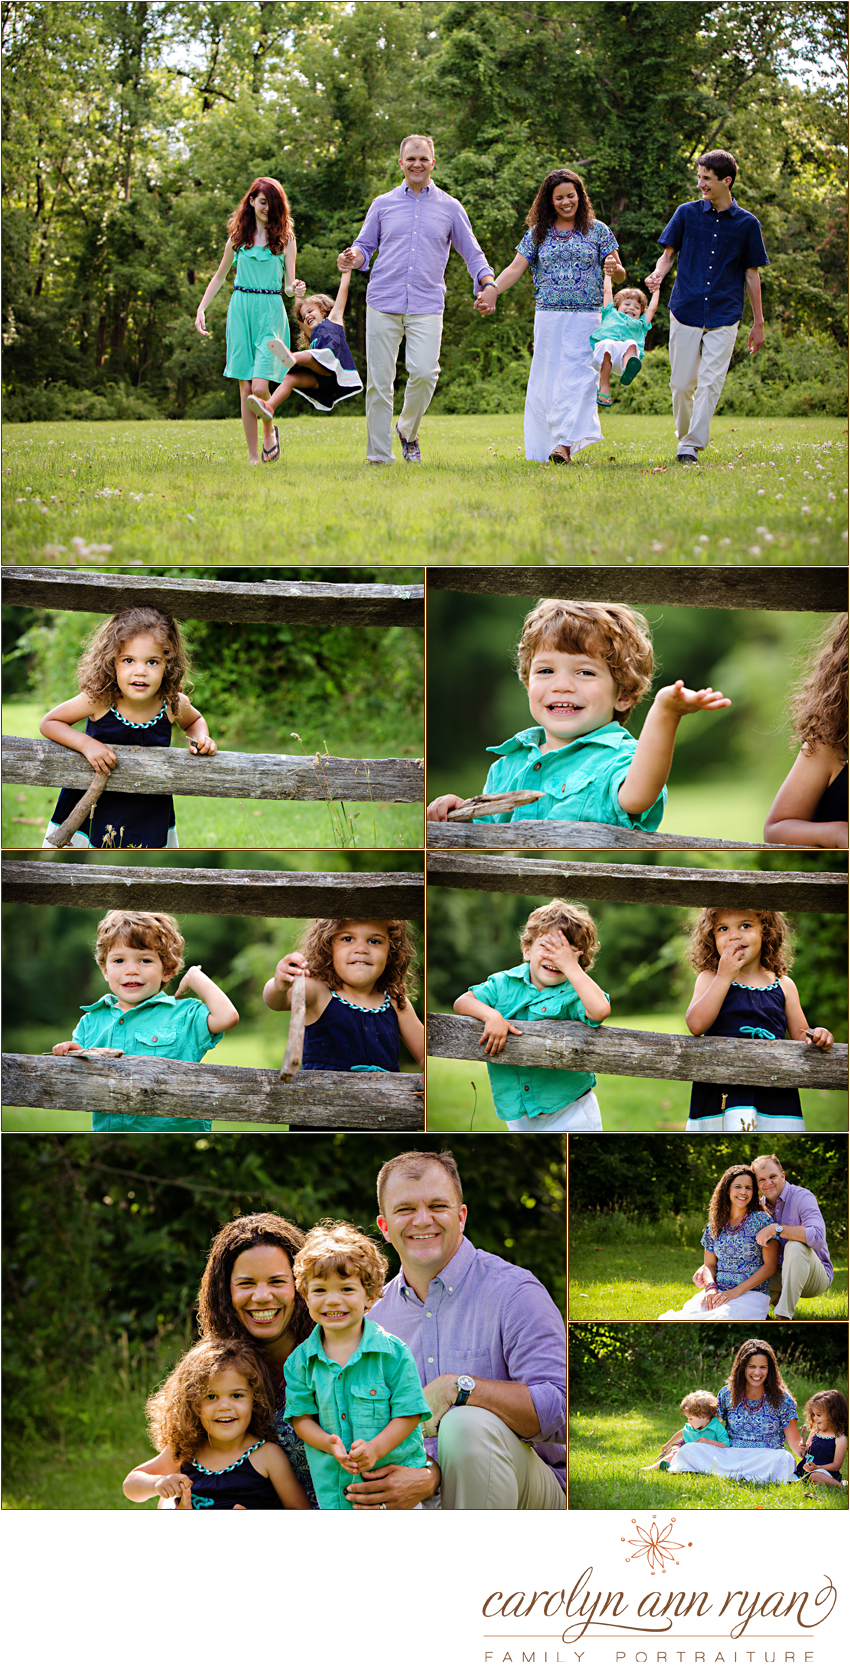 Marvin, NC Summer Family Portraits by Carolyn Ann Ryan